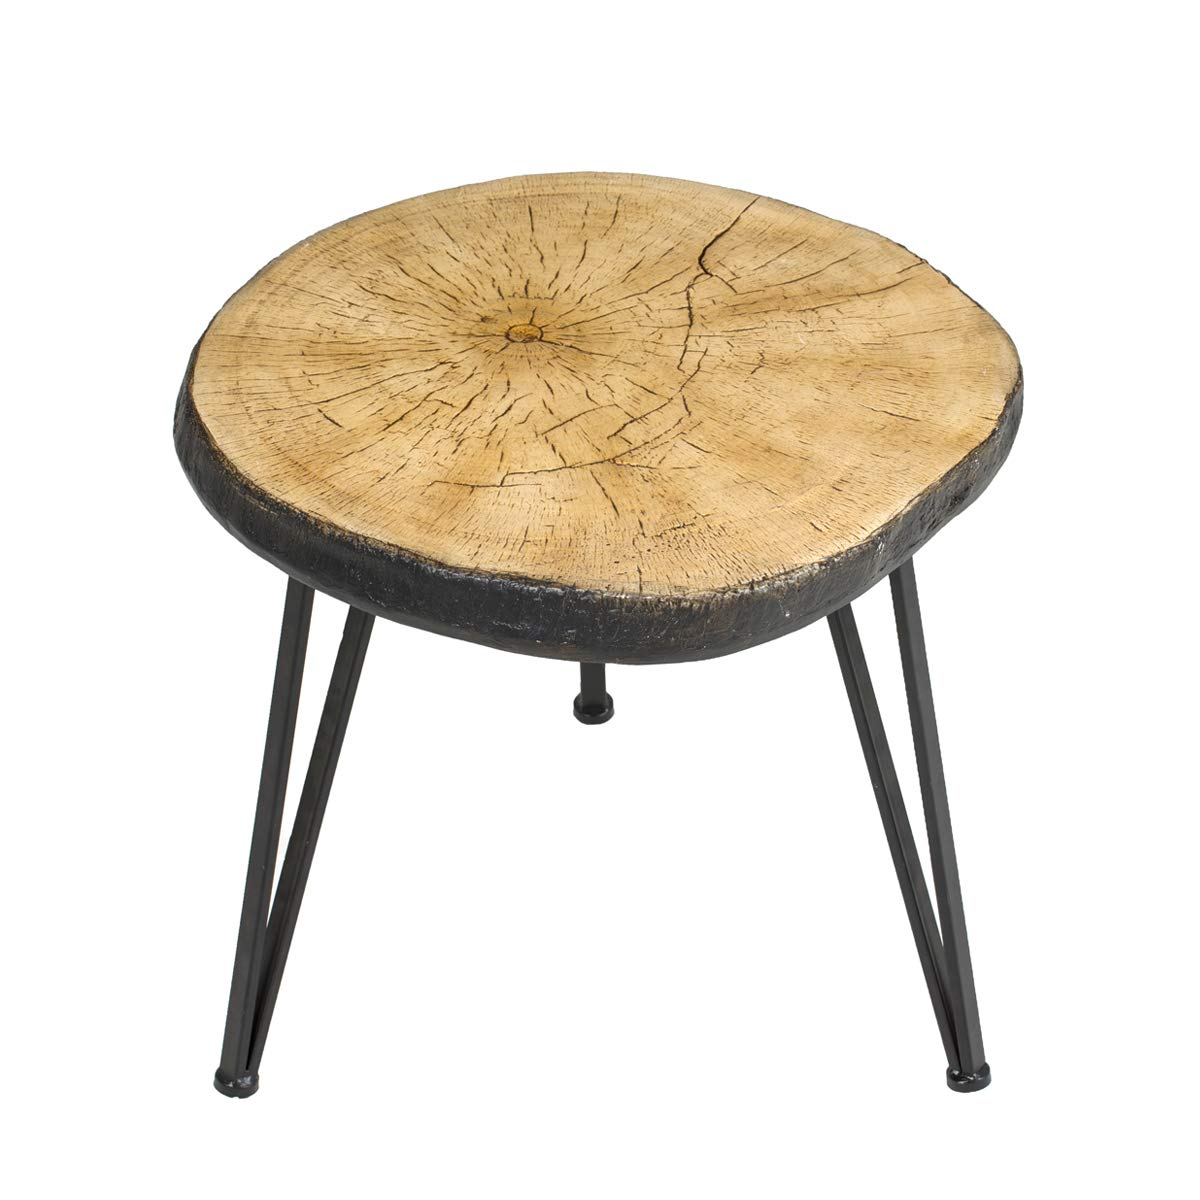 SUNEON End Tables, Imitation Wood Coffee Side Table for Living Room,Bedroom,Balcony,Garden